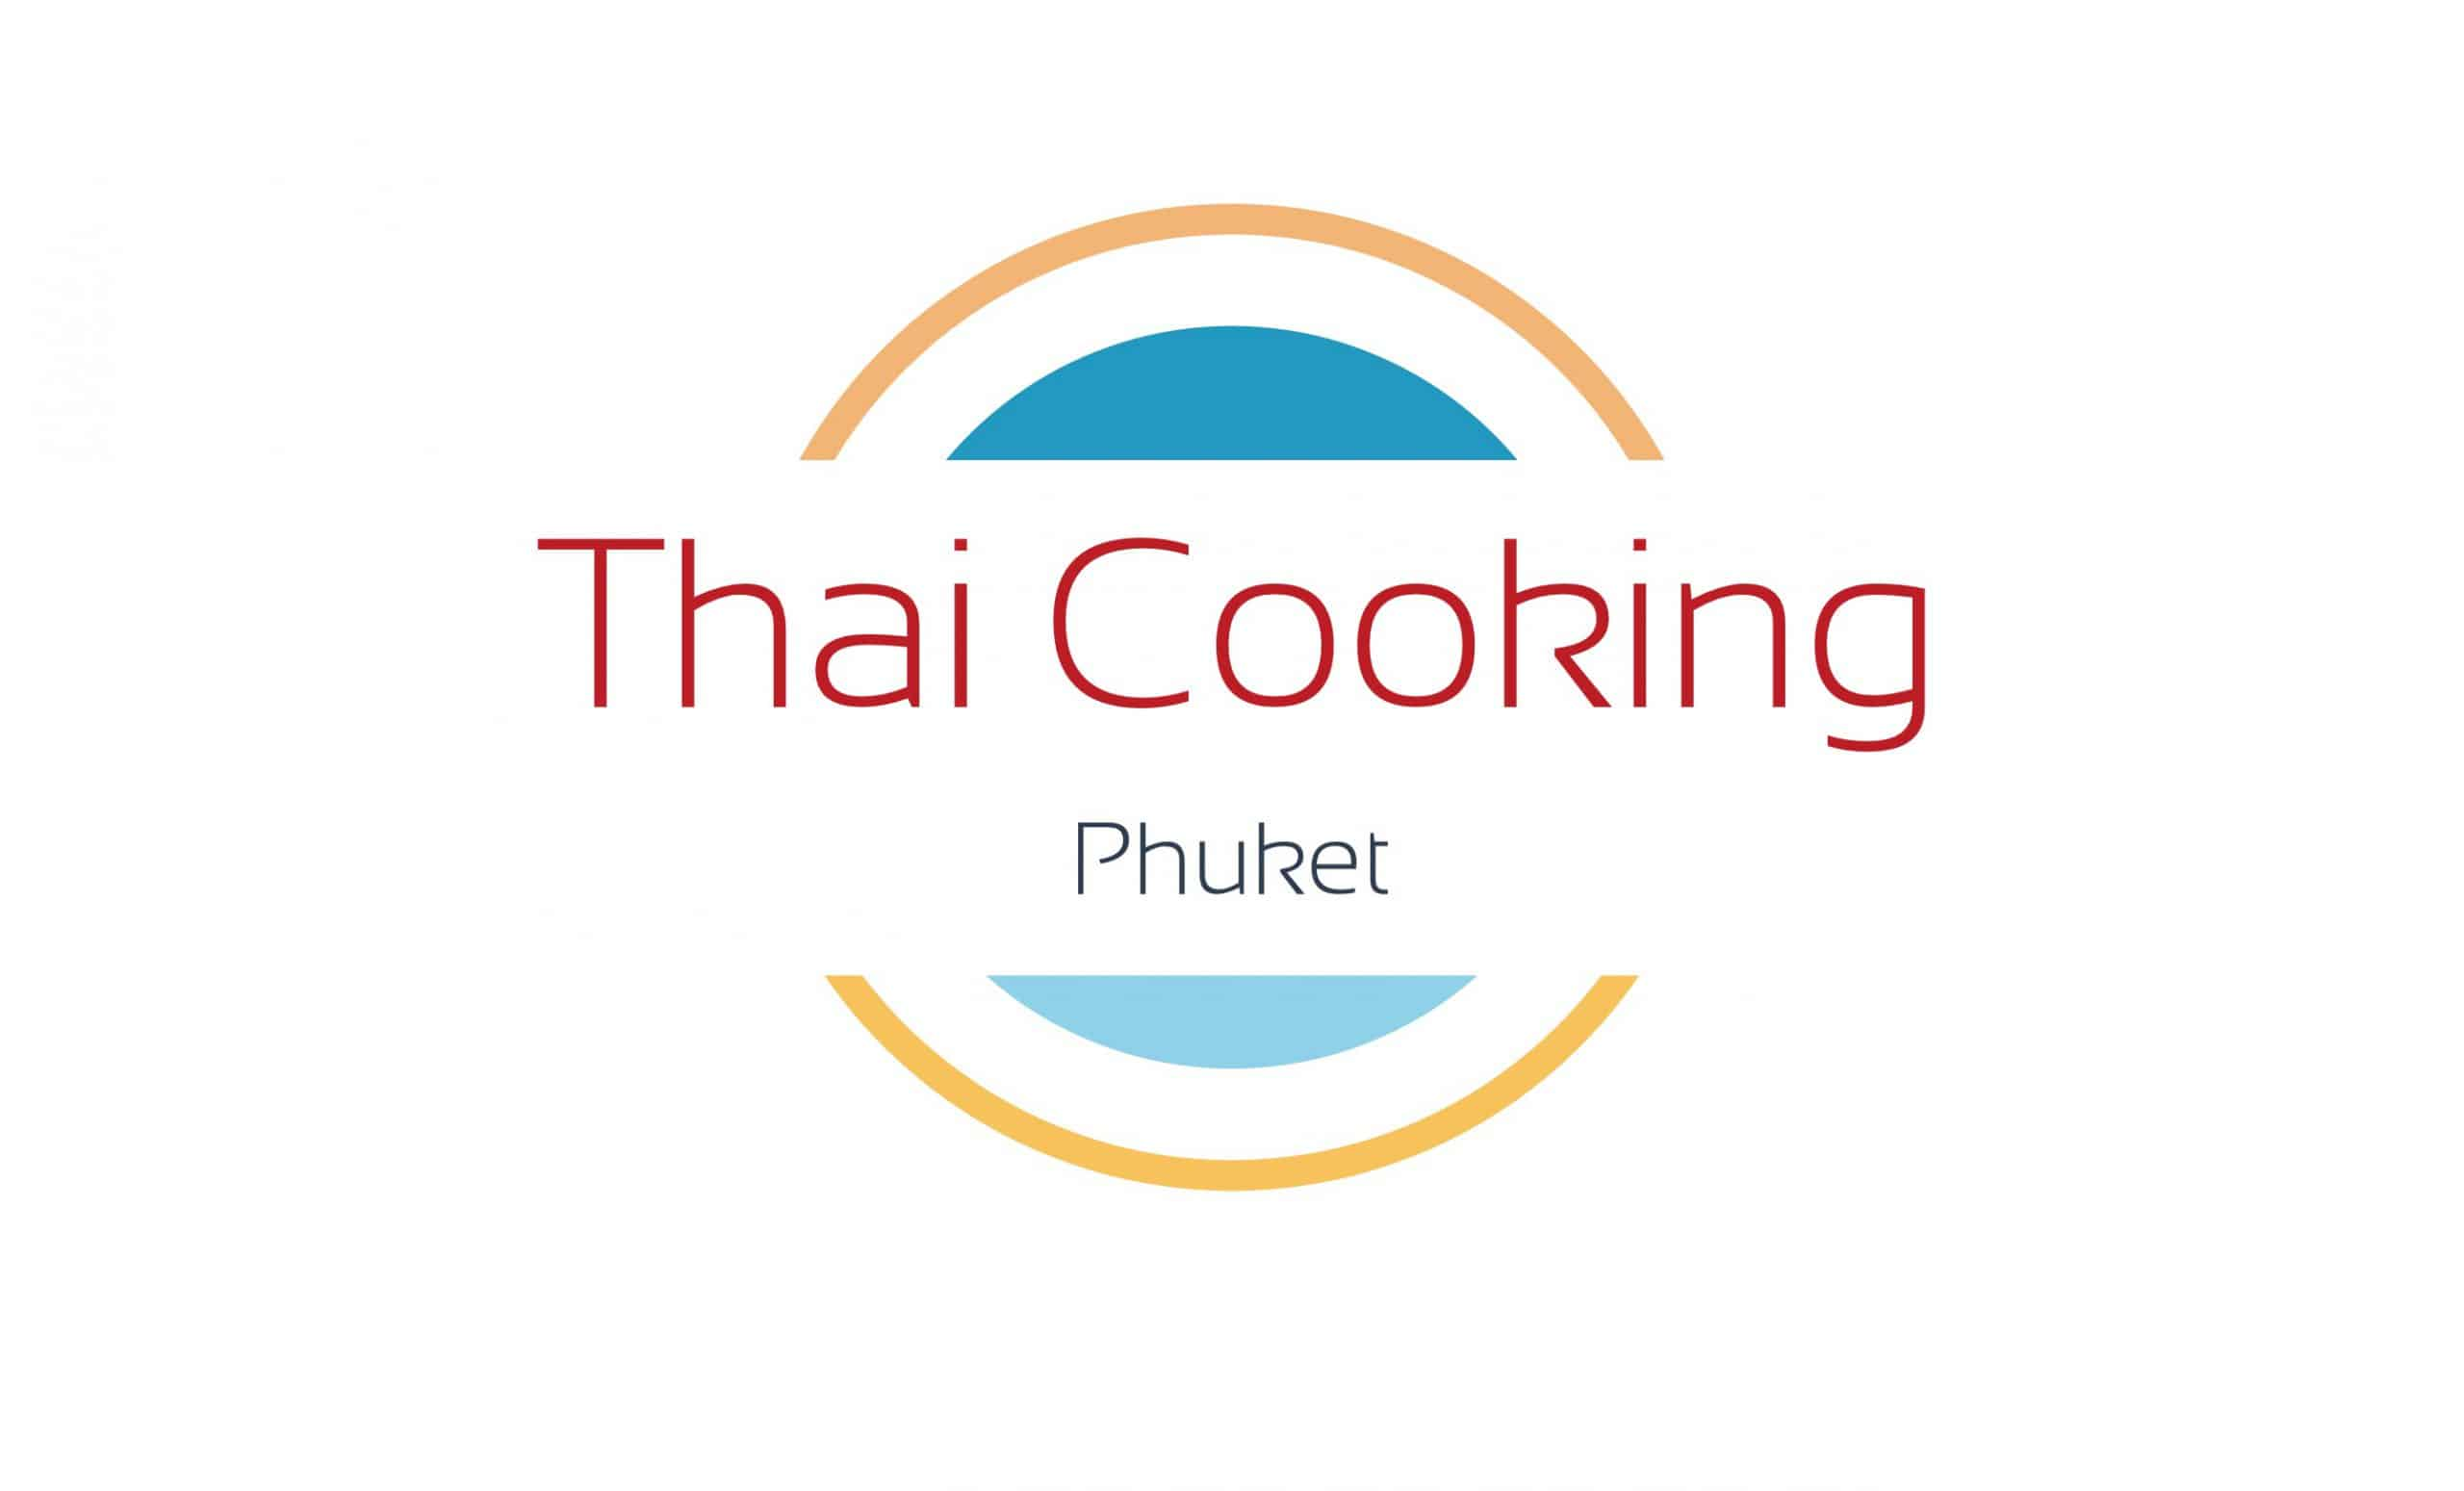 Thai Cooking Phuket